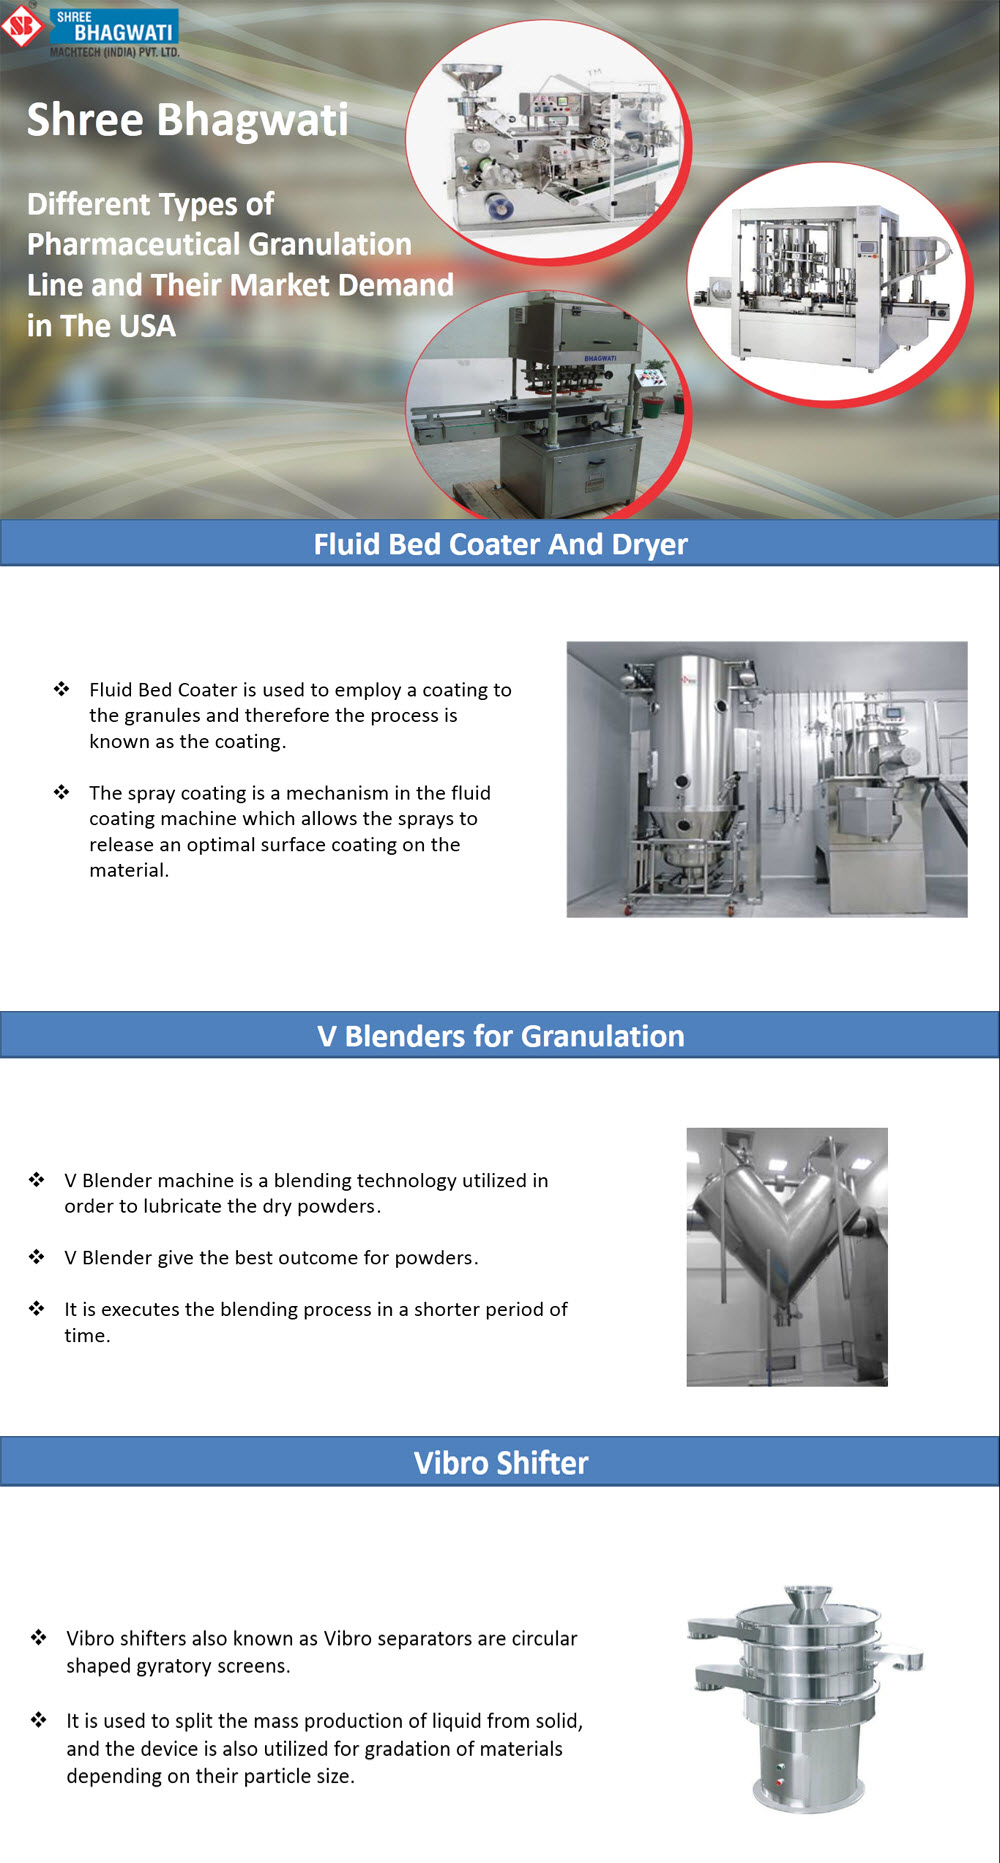 Different Types of Pharmaceutical Granulation Line and Their Market Demand in The USA